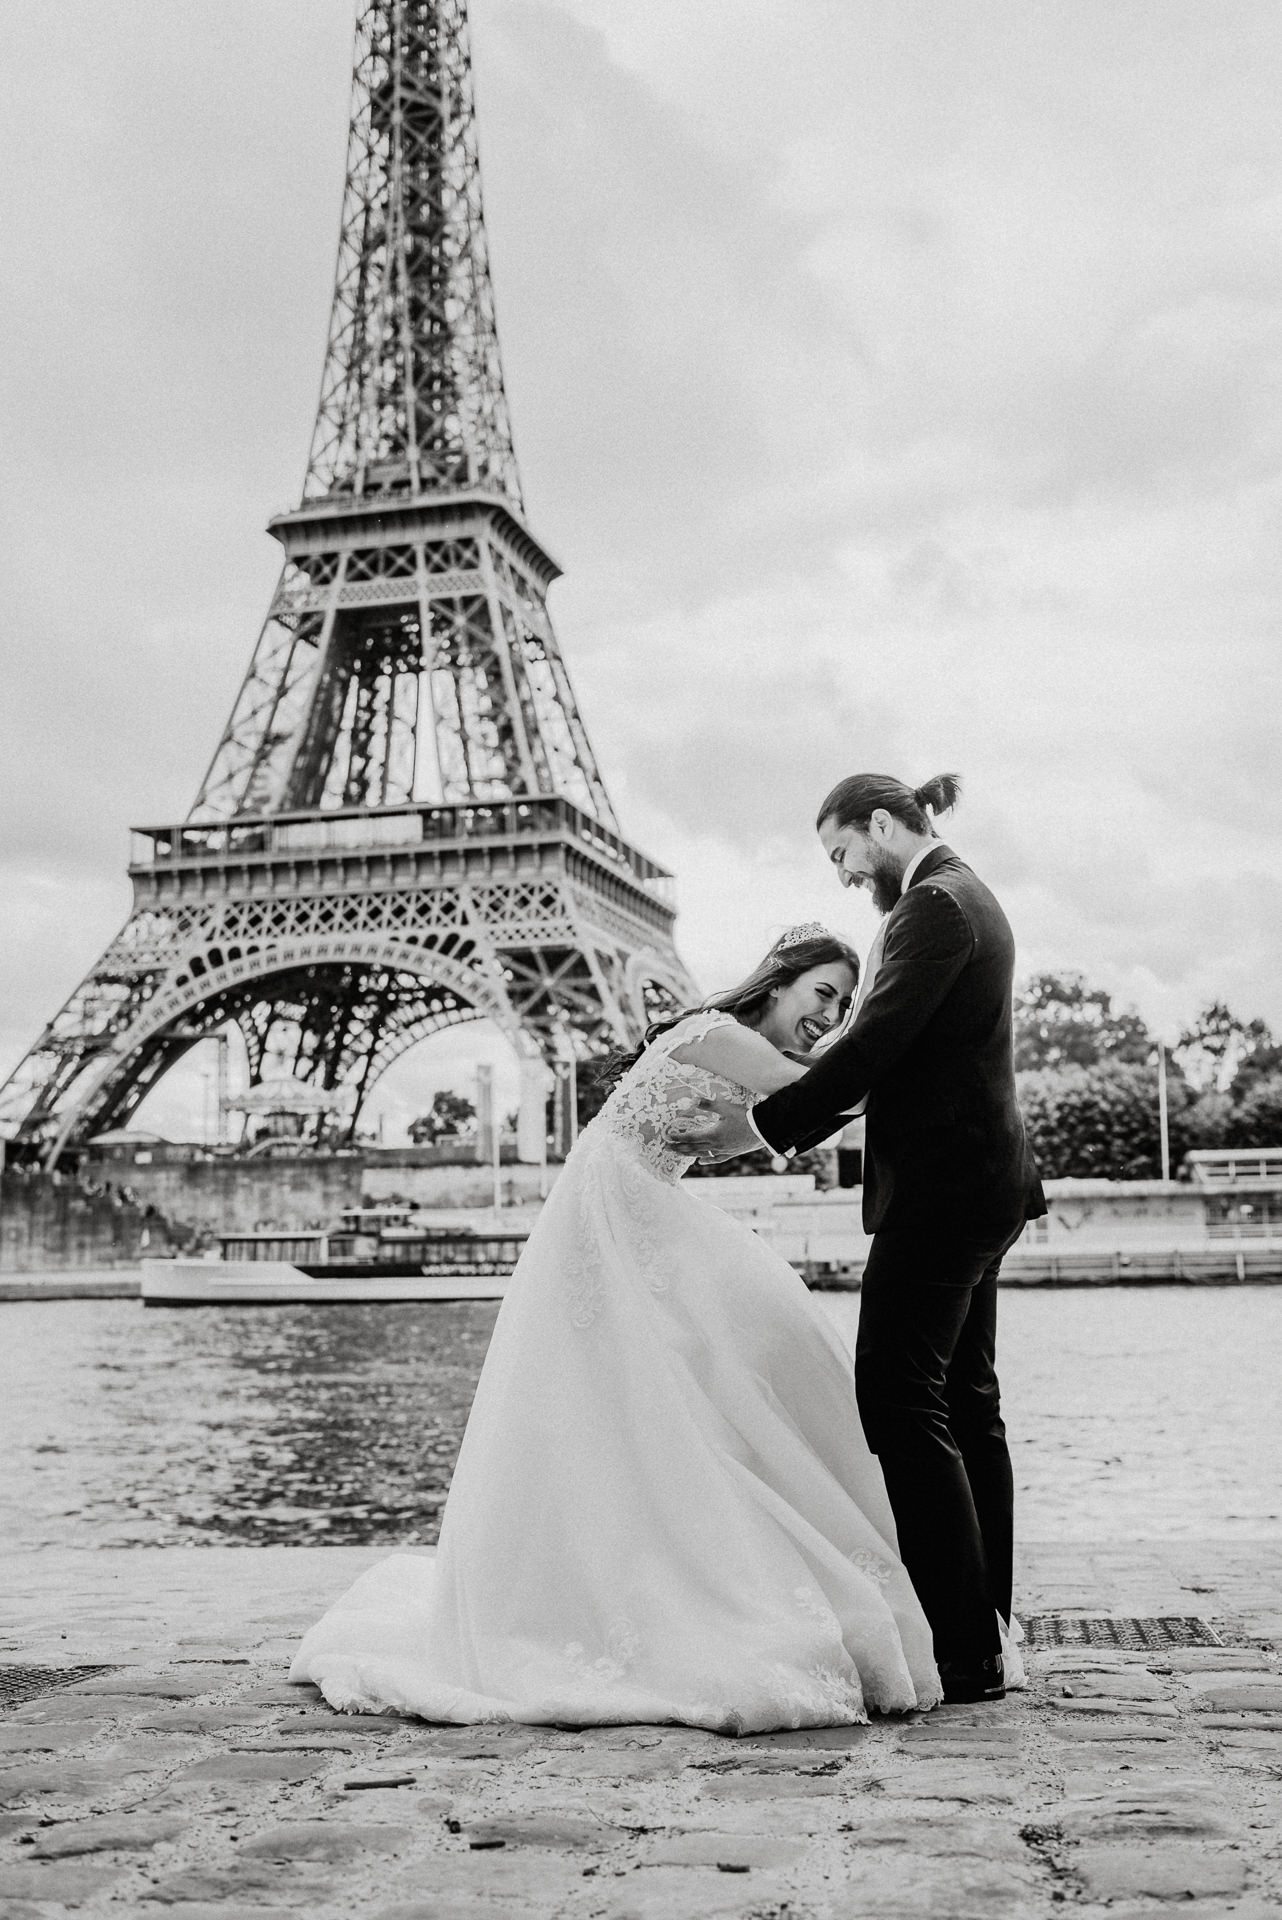 Eiffel tower wedding proposal photo shoot